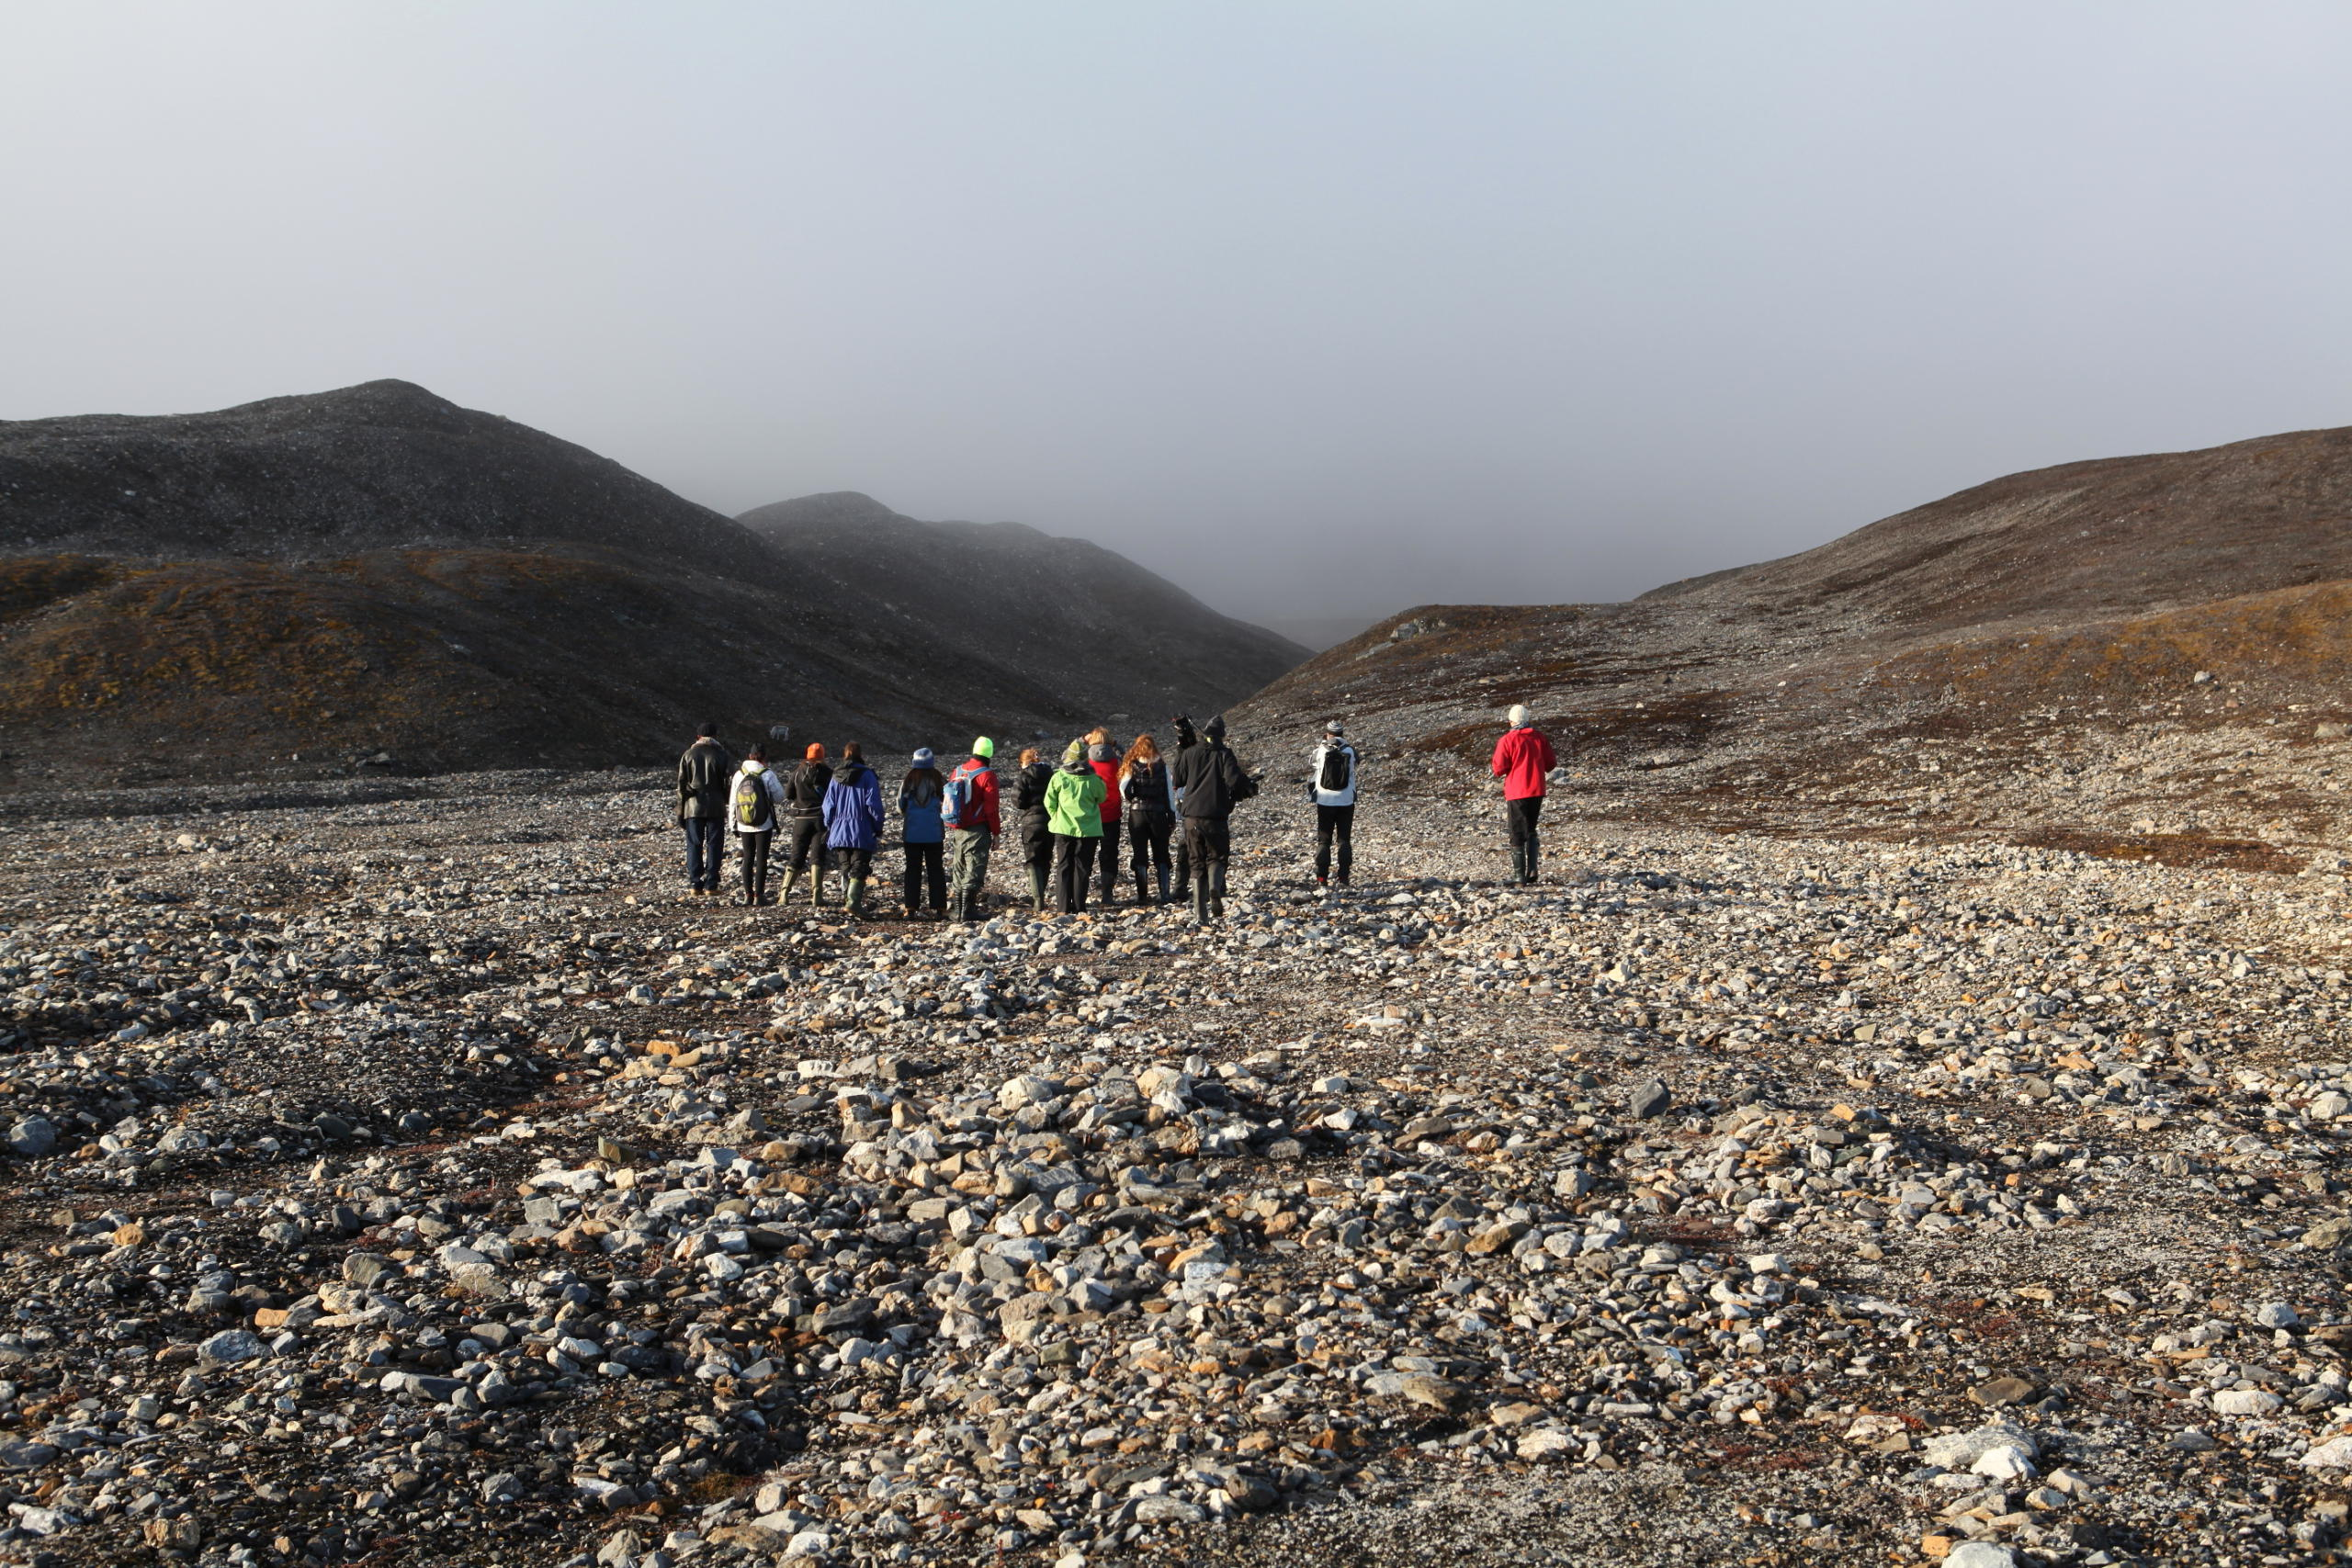 group of people in a vast tundra landscape